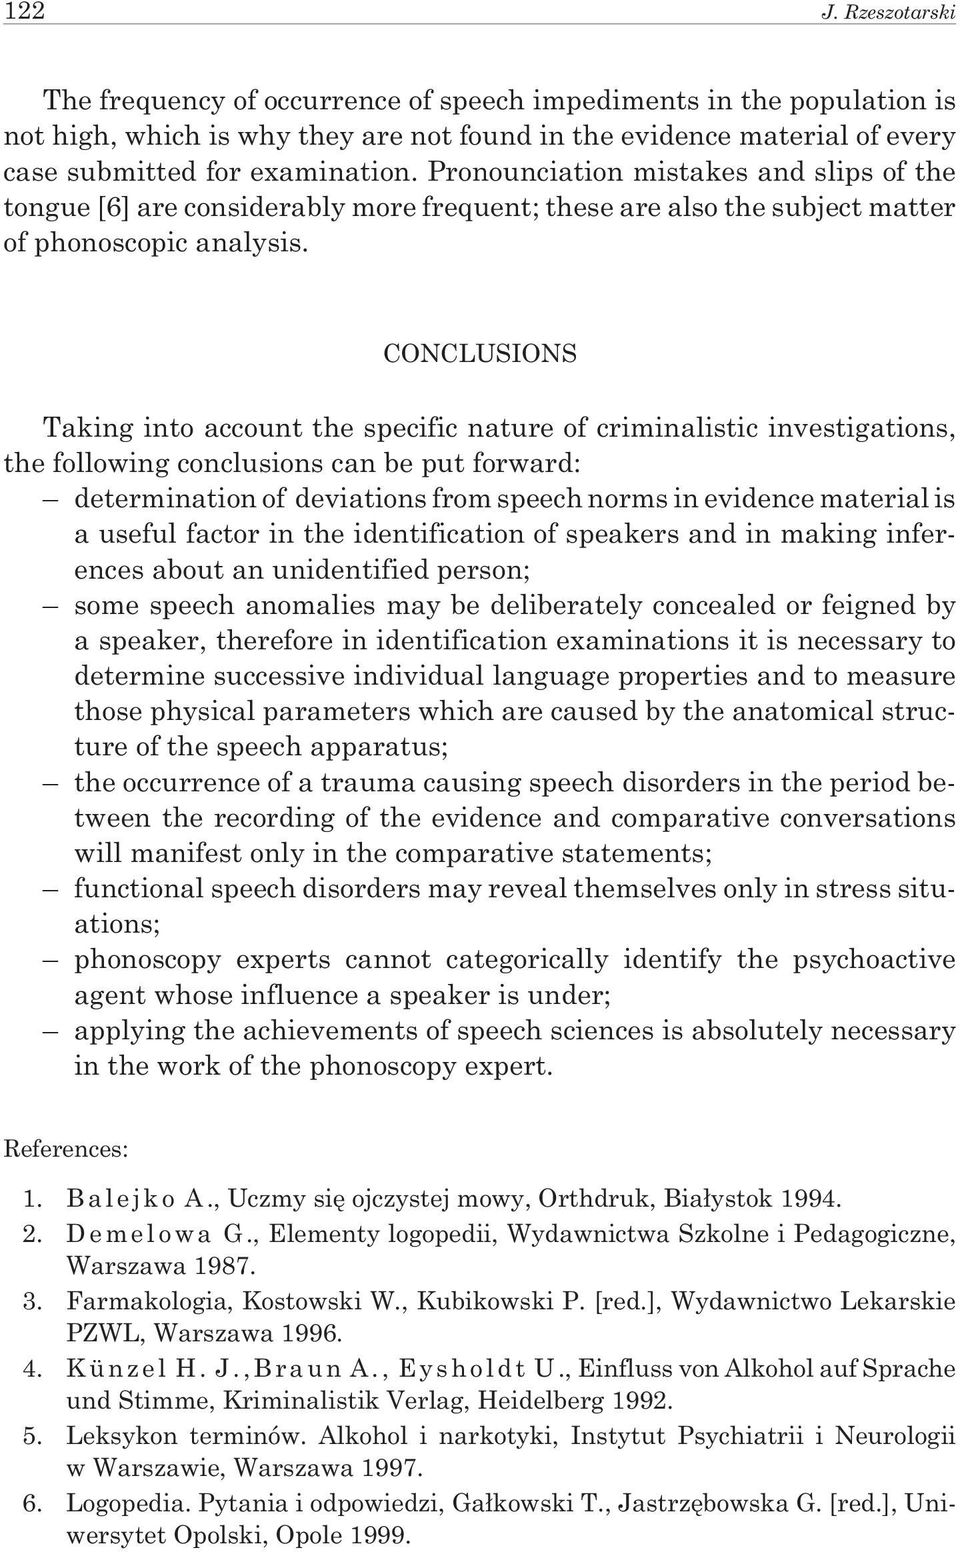 CONCLUSIONS Taking into account the specific nature of criminalistic investigations, the following conclusions can be put forward: determination of deviations from speech norms in evidence material